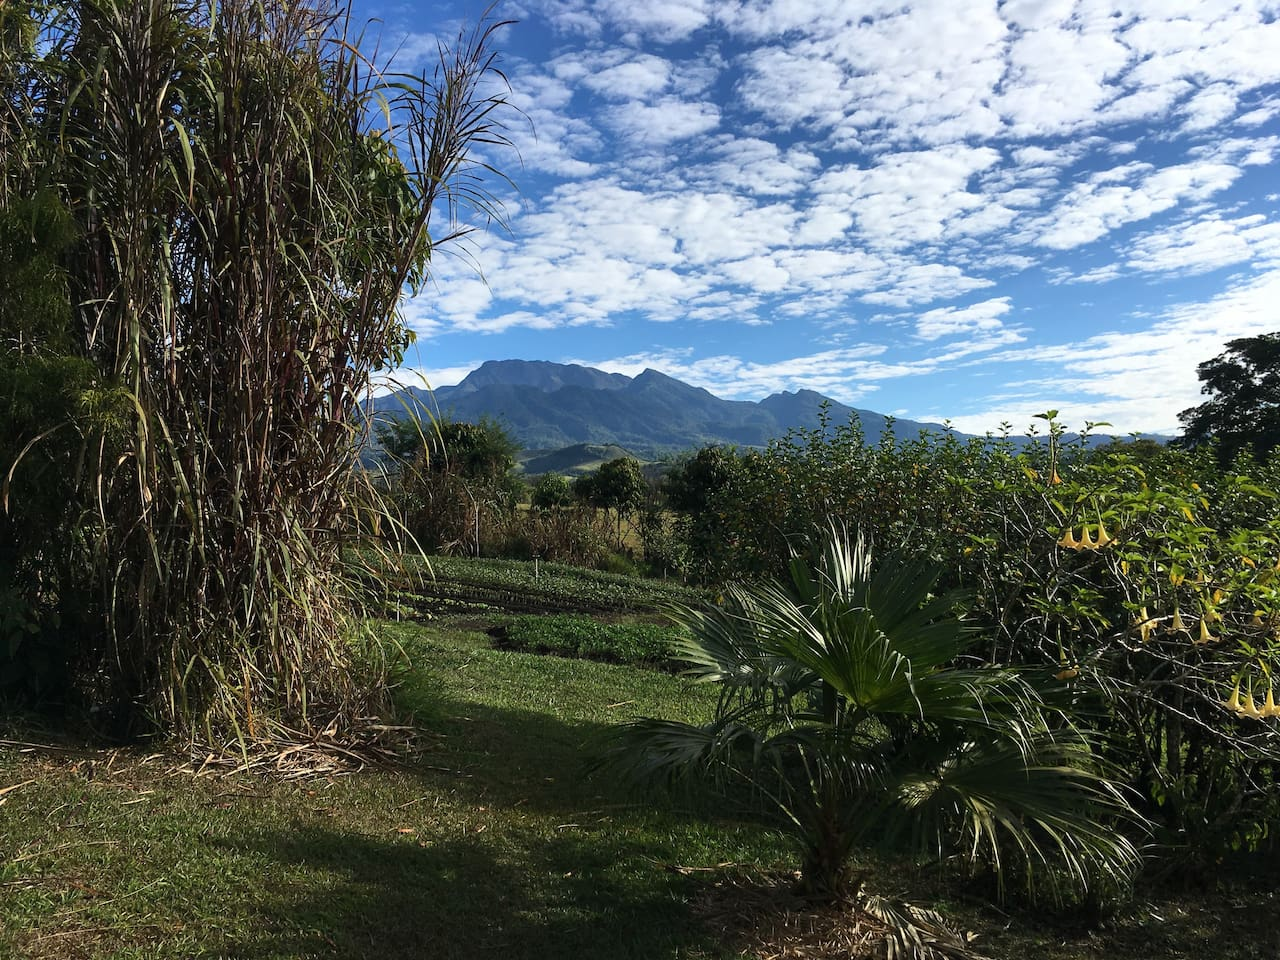 View to Volcan Baru from farm